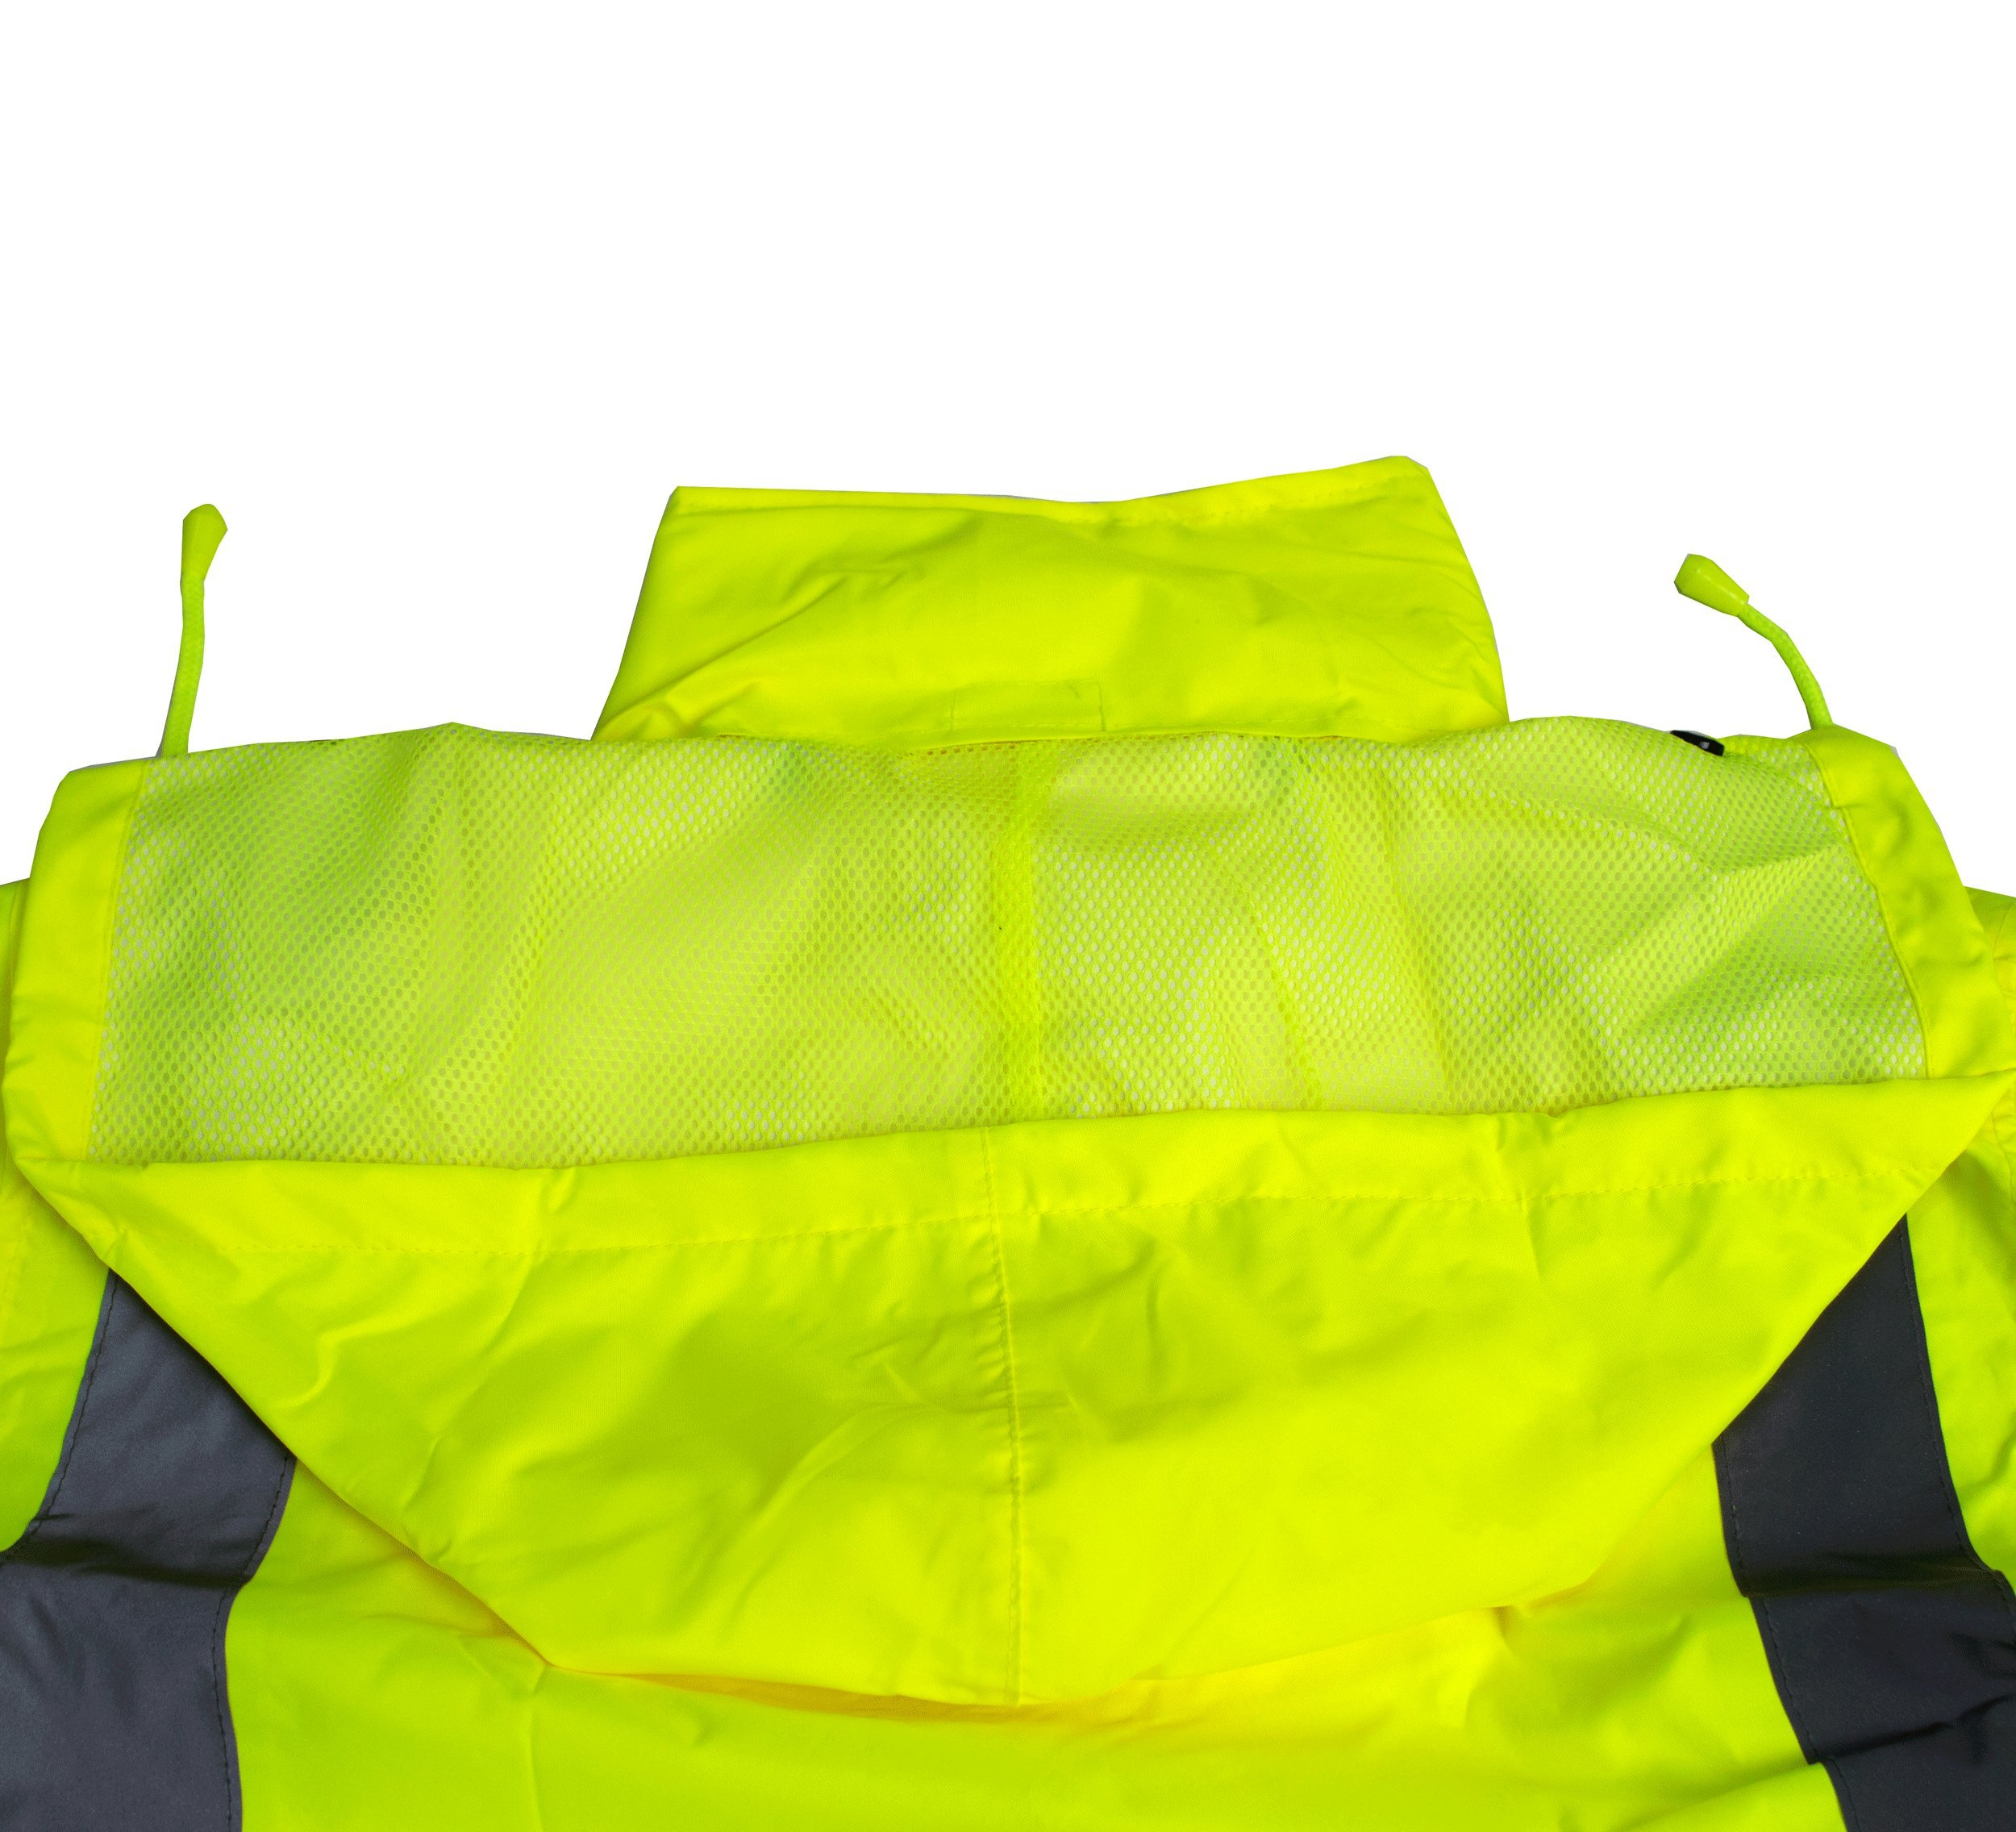 RK Safety Class 3 Rain suit, Jacket, Pants High Visibility Reflective Black Bottom RW-CLA3-LM11 (Medium, Lime) by New York Hi-Viz Workwear (Image #3)